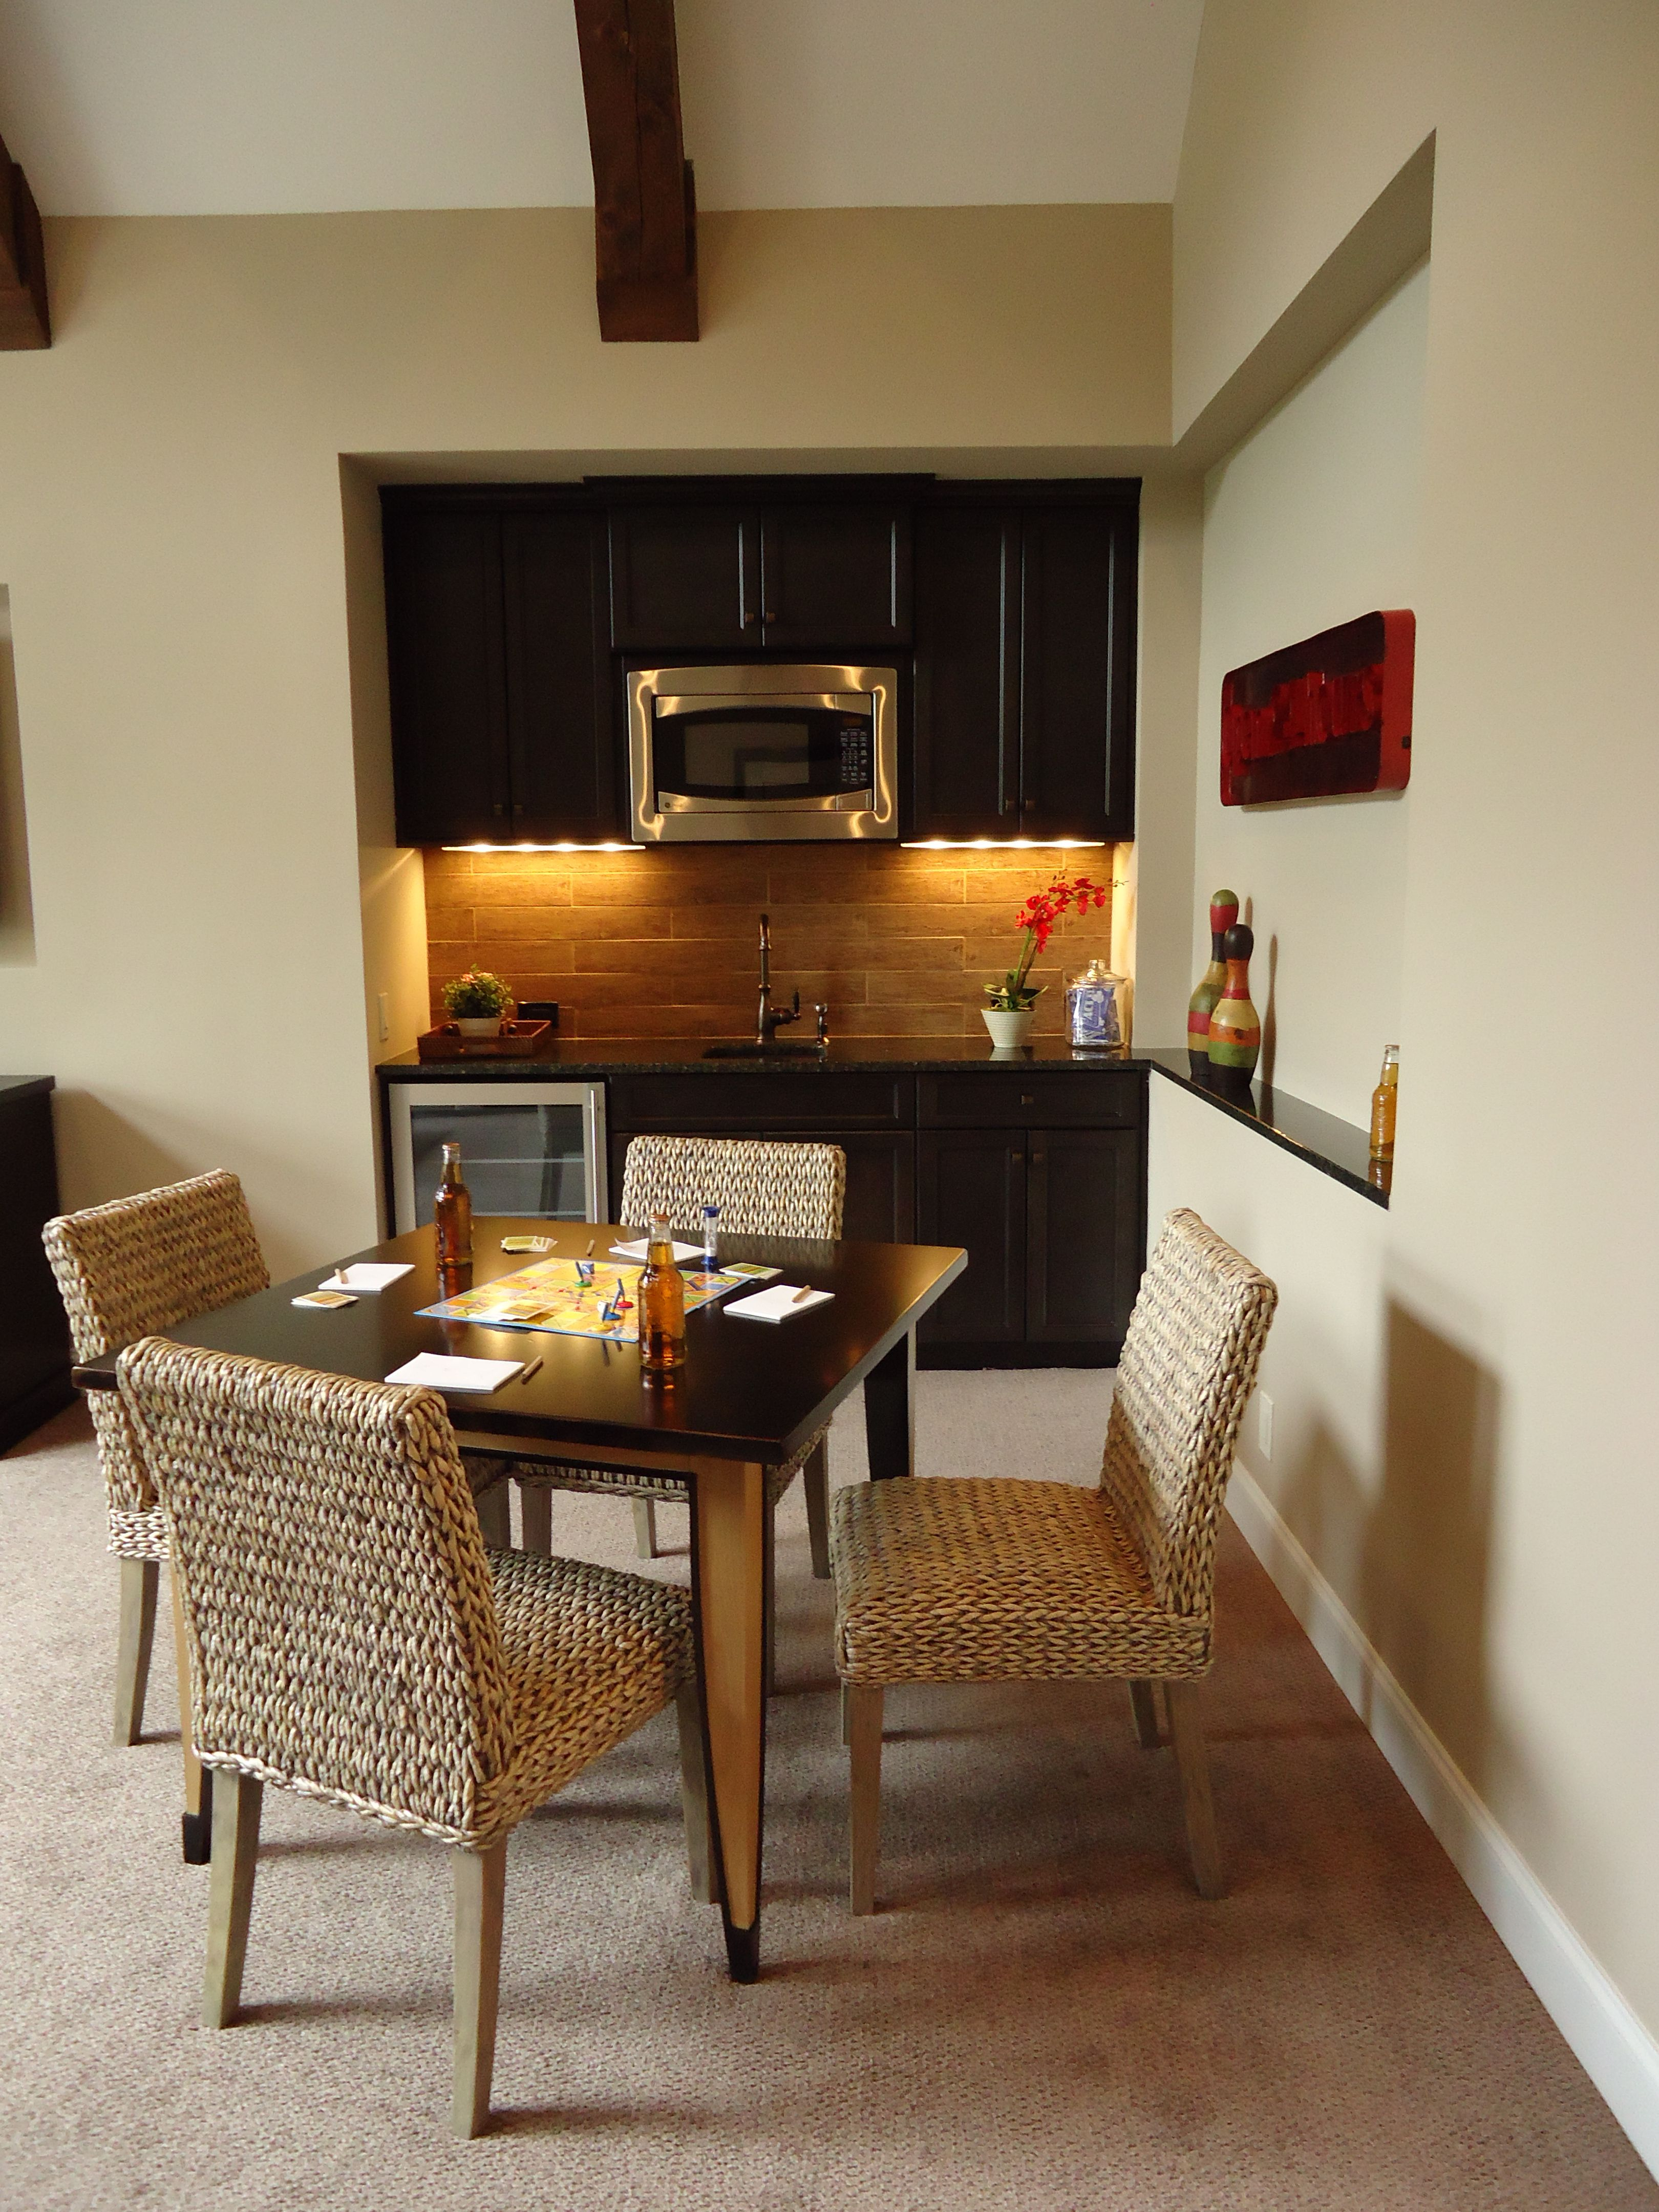 Want To Put A Microwave In Club Room Wet Bar